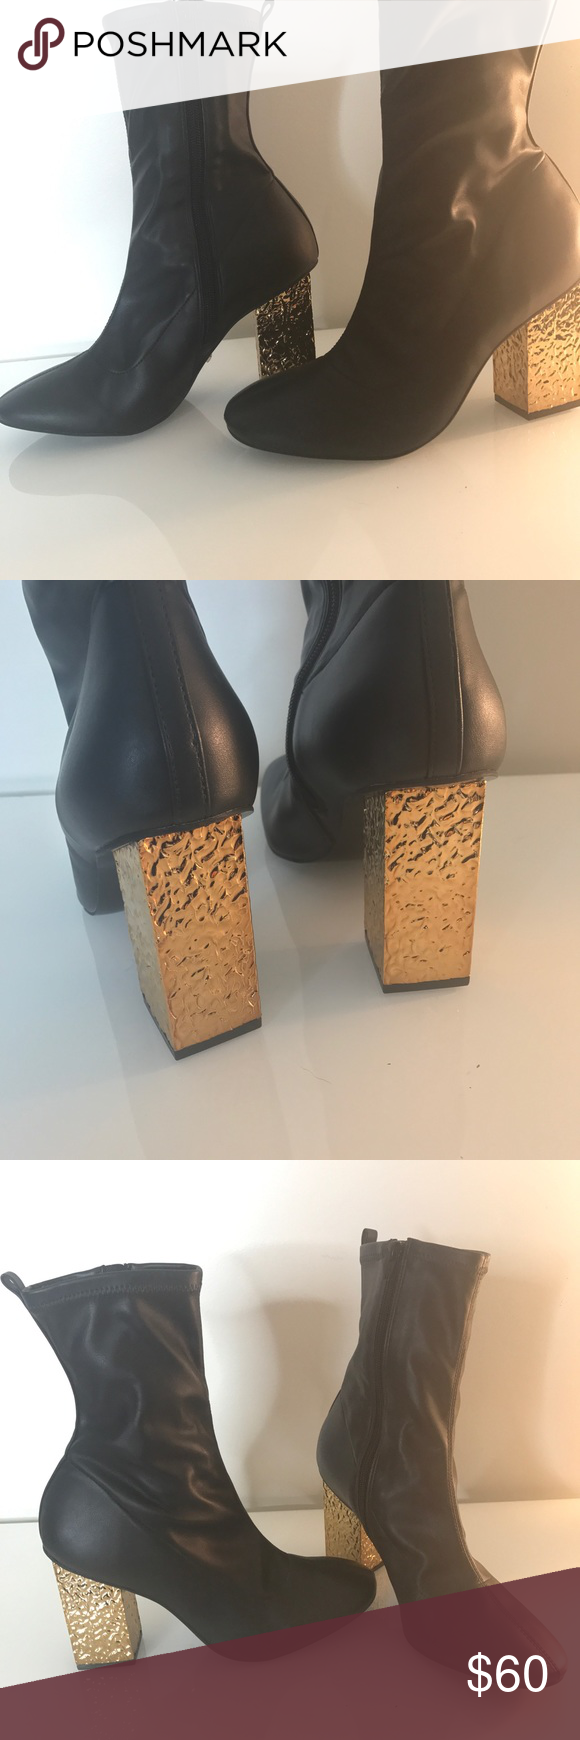 Topshop black booties with gold heel NWOT Topshop black booties with gold  heel NWOT Topshop Shoes Ankle Boots   Booties 38097a52ab2b6